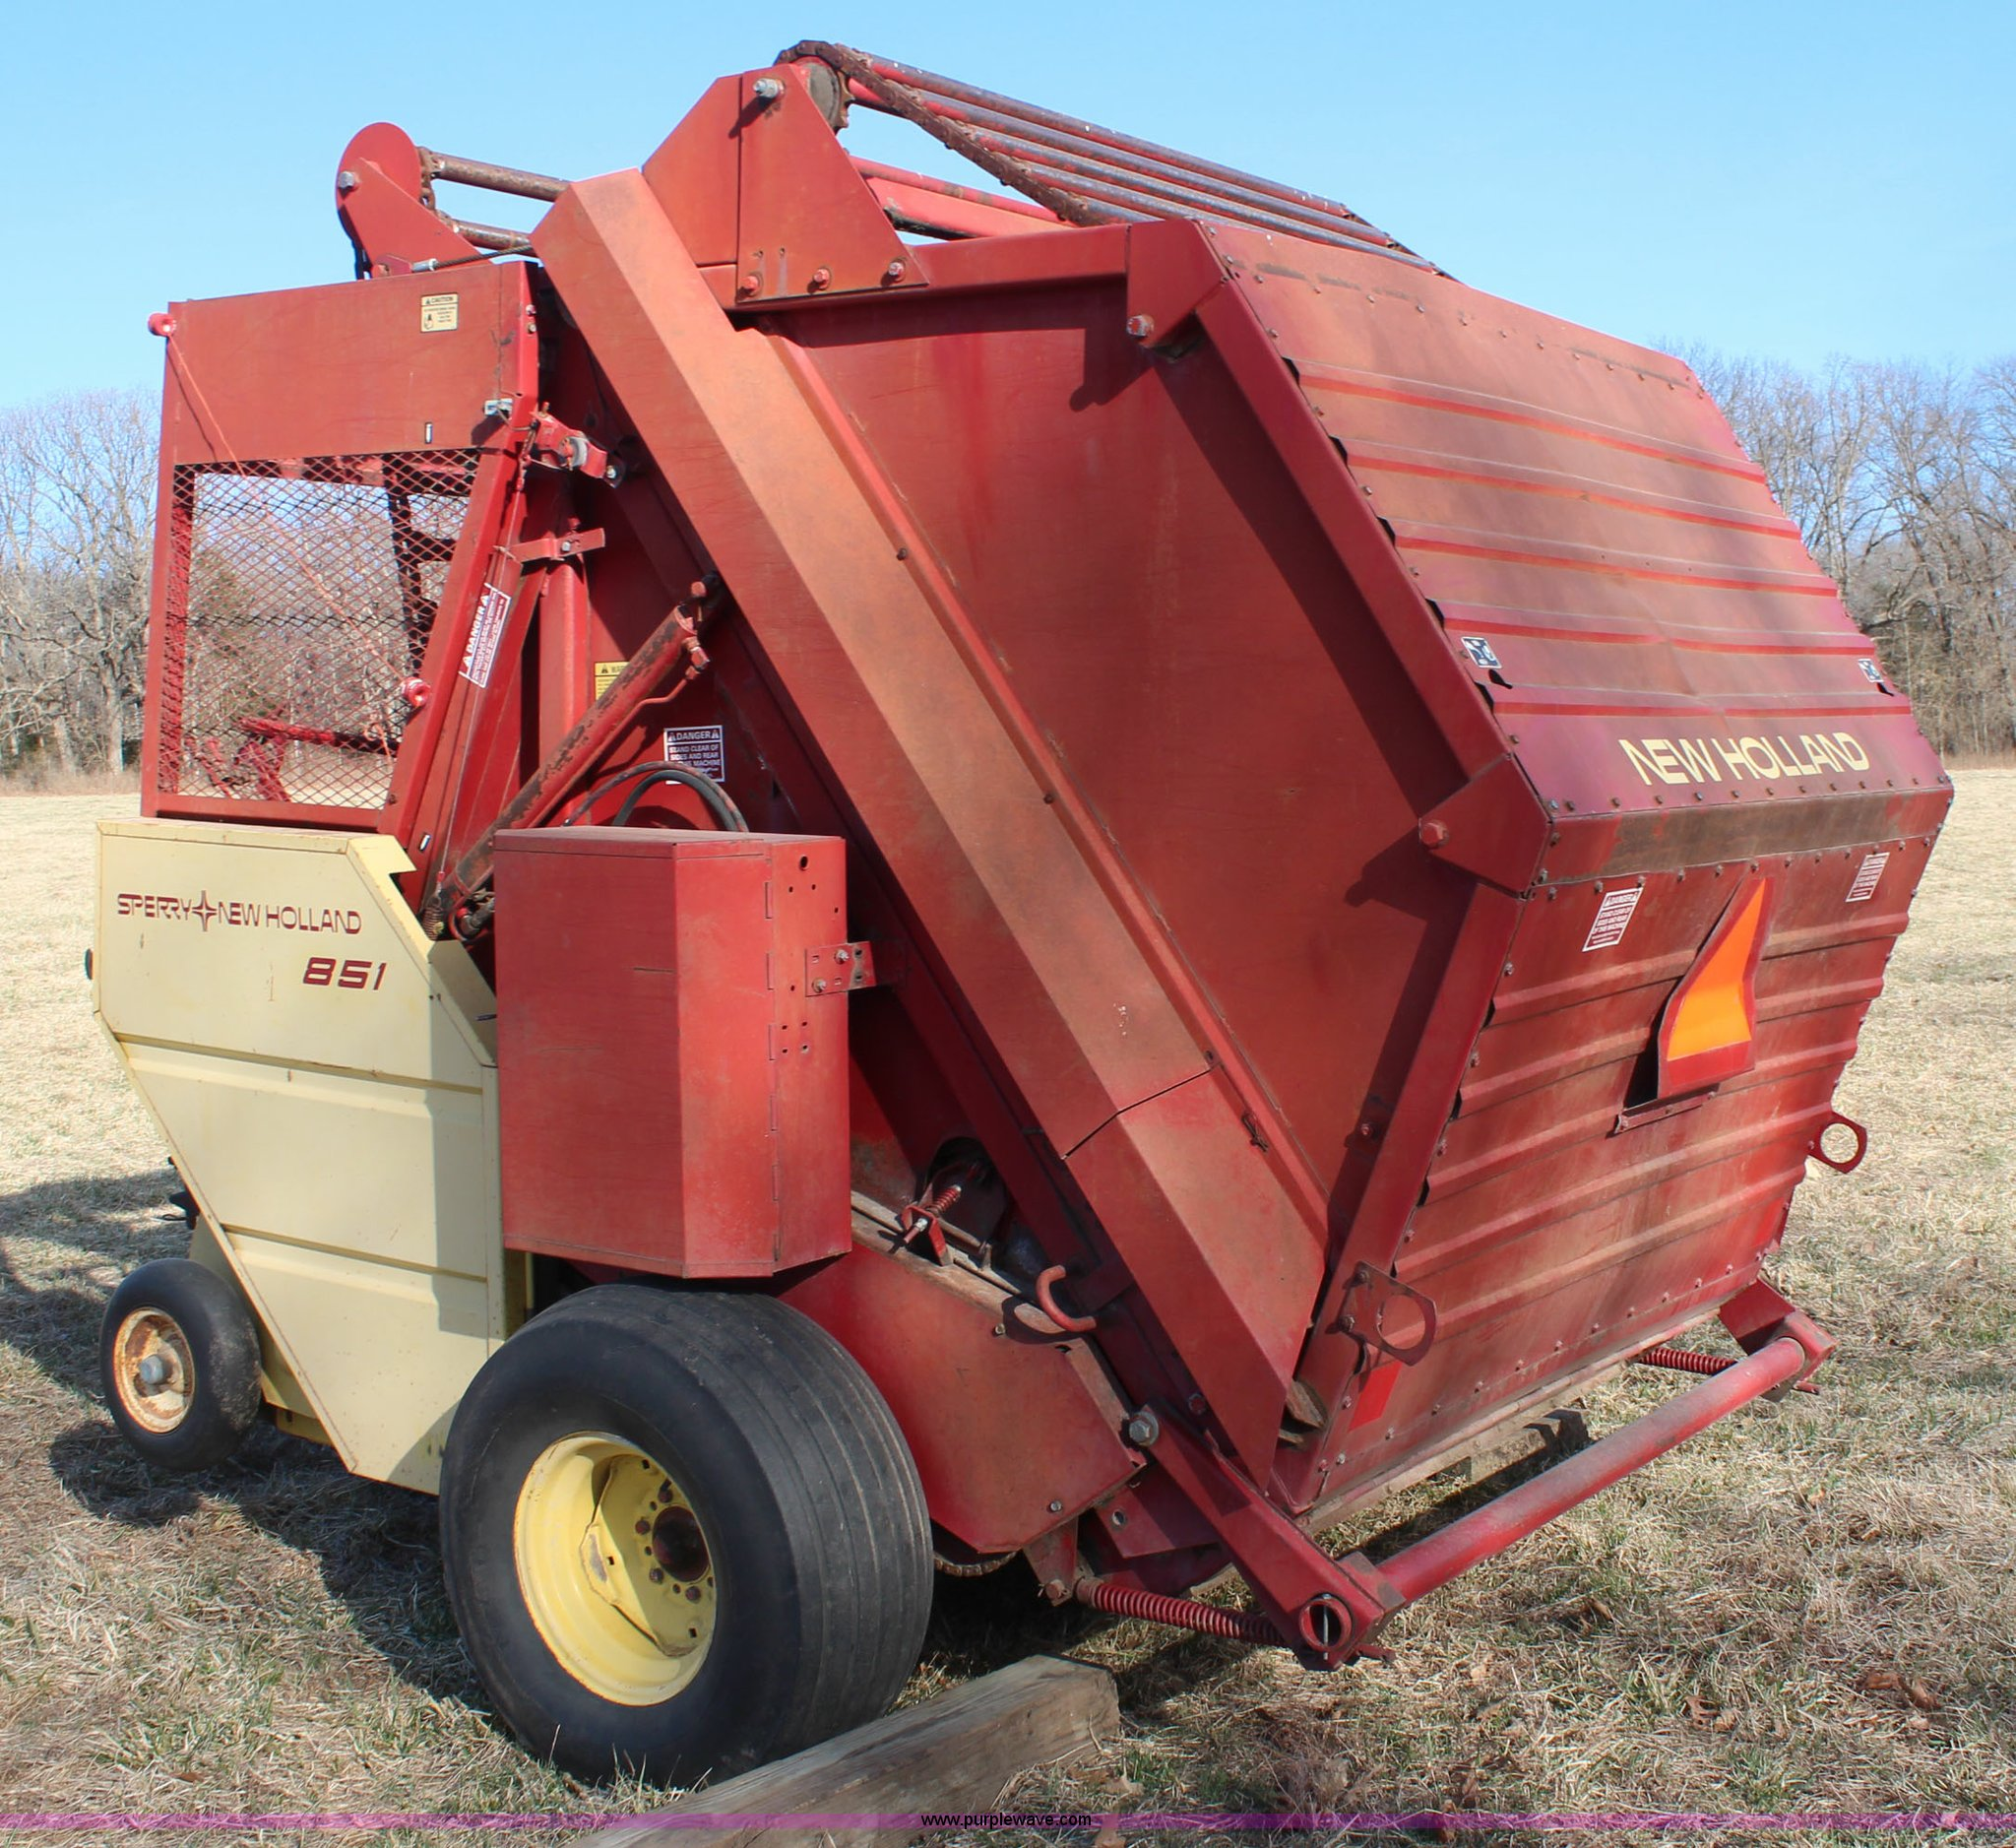 ... Holland 851 round baler Full size in new window ...